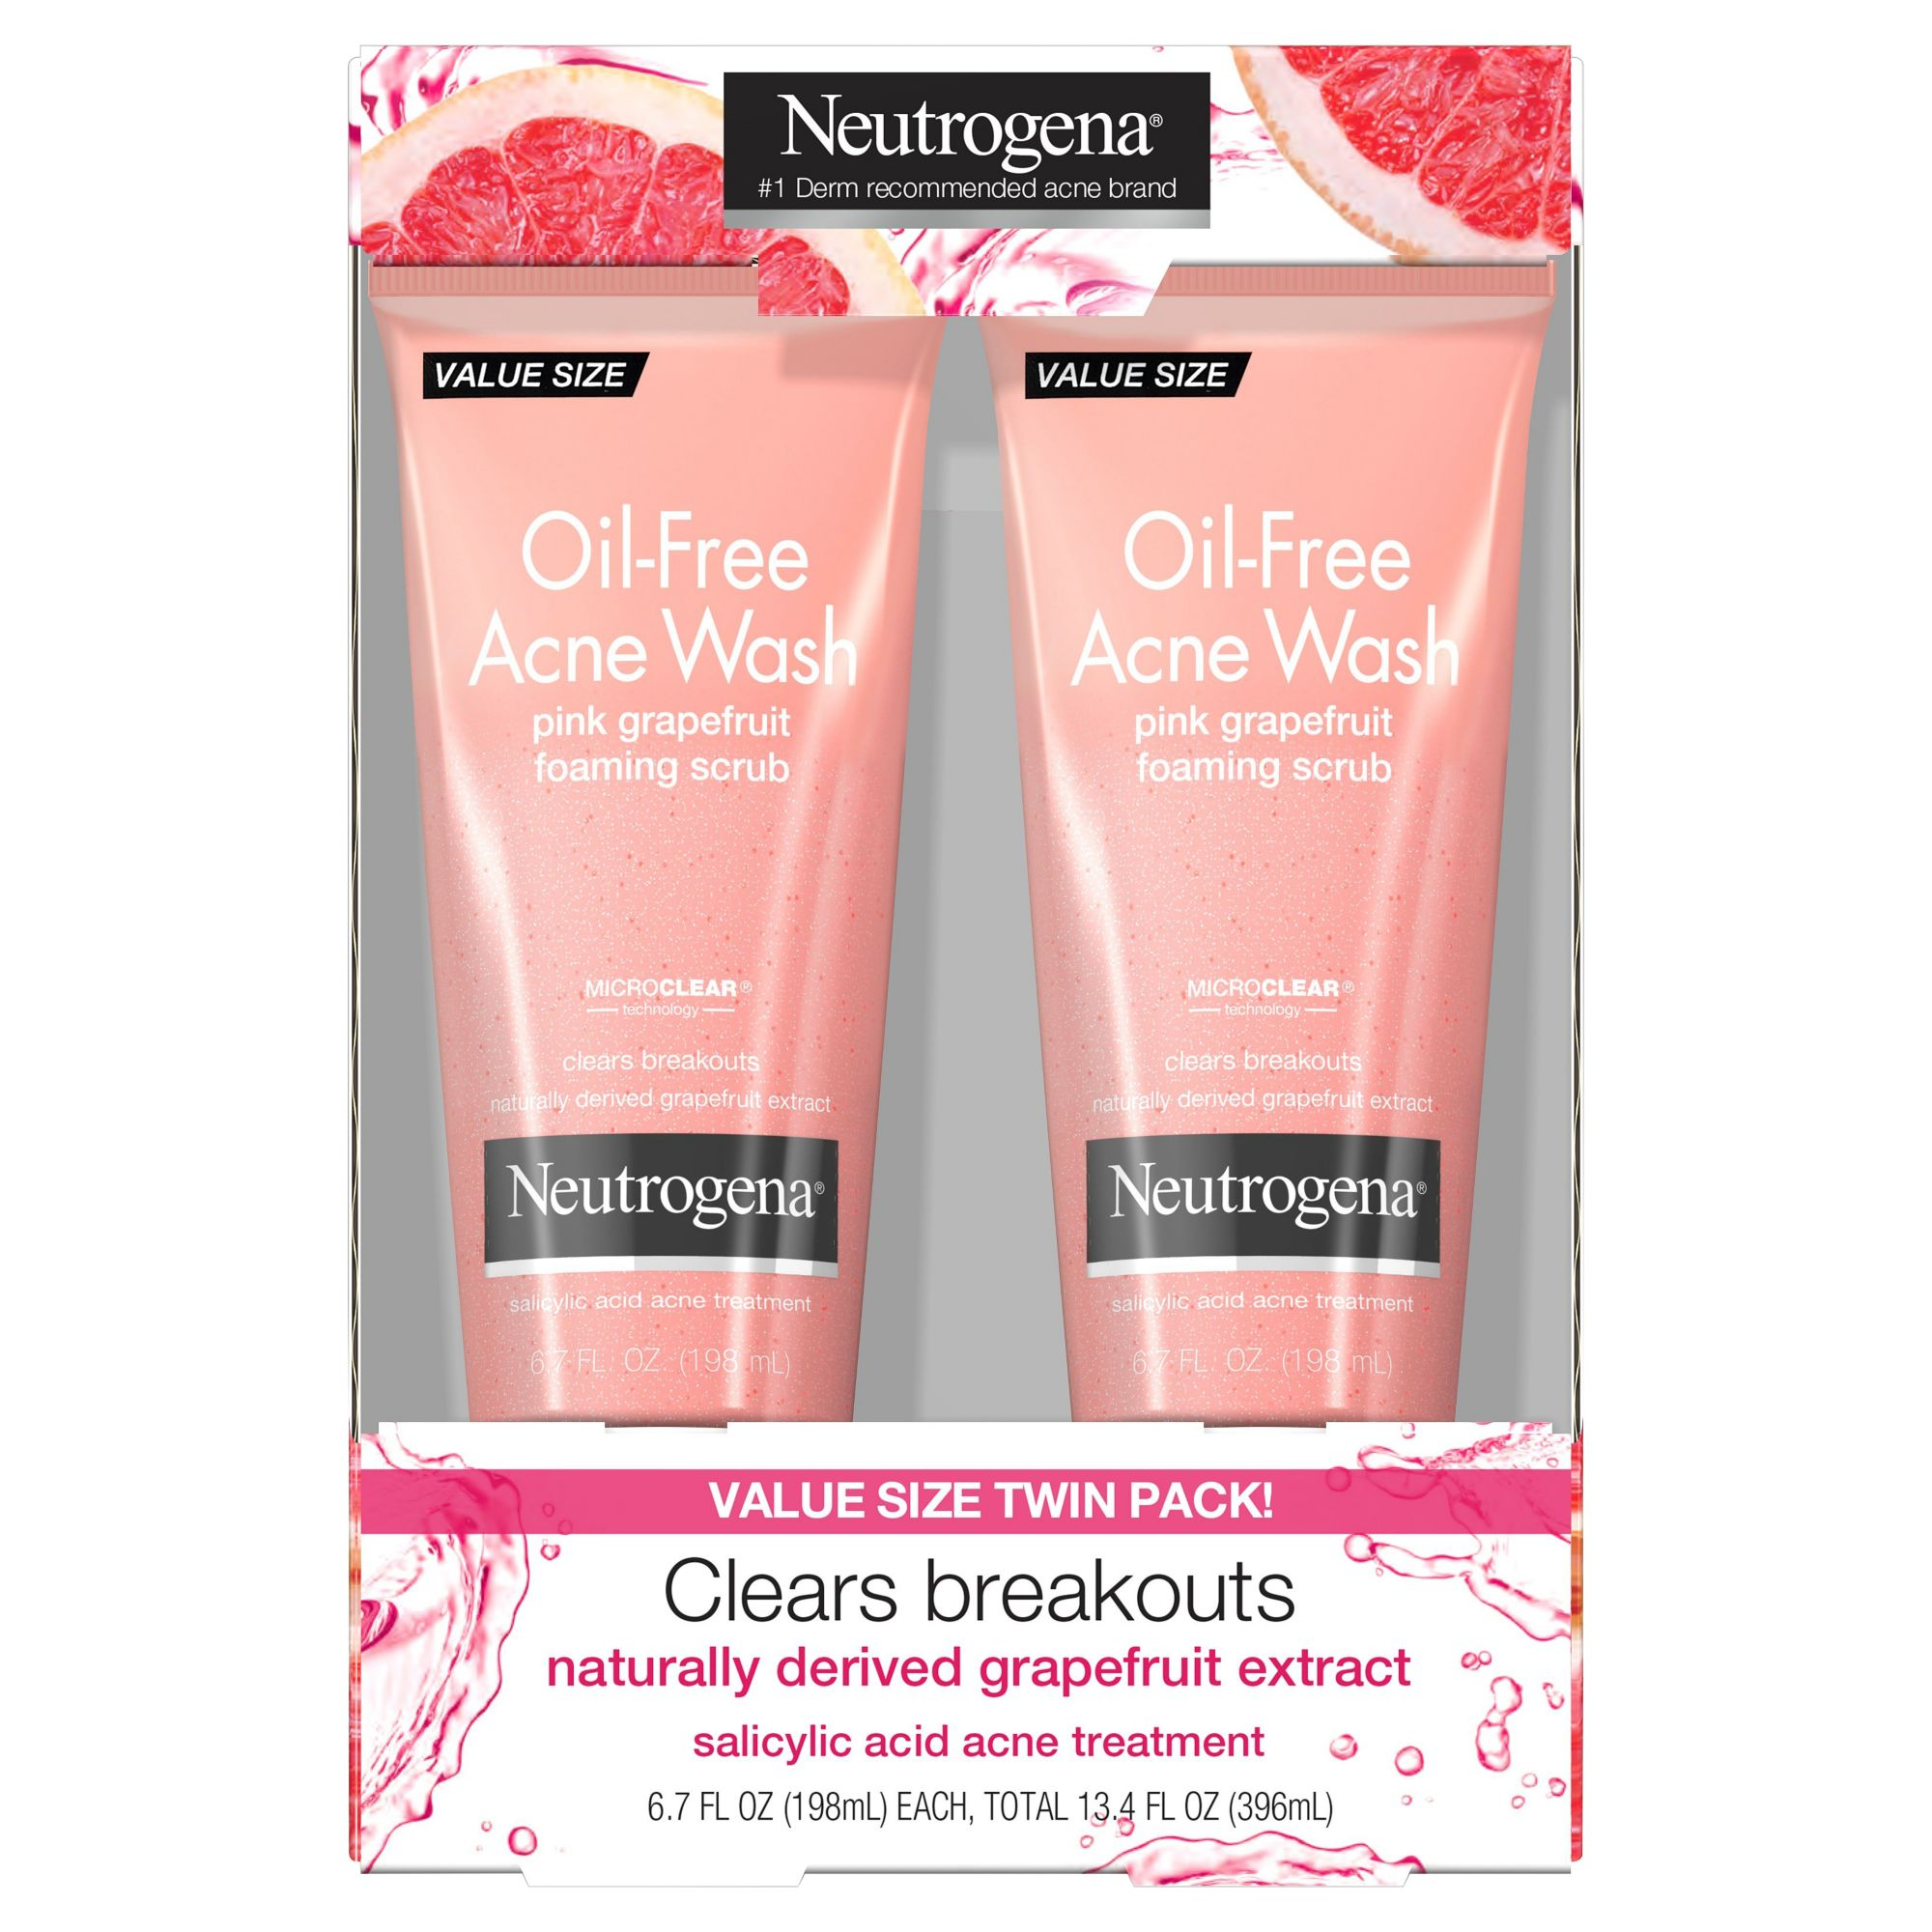 Neutrogena Neutrogena Oil Free Acne Face Wash Daily Face Scrub 4 2 Fl Oz From Walgreens Shefinds